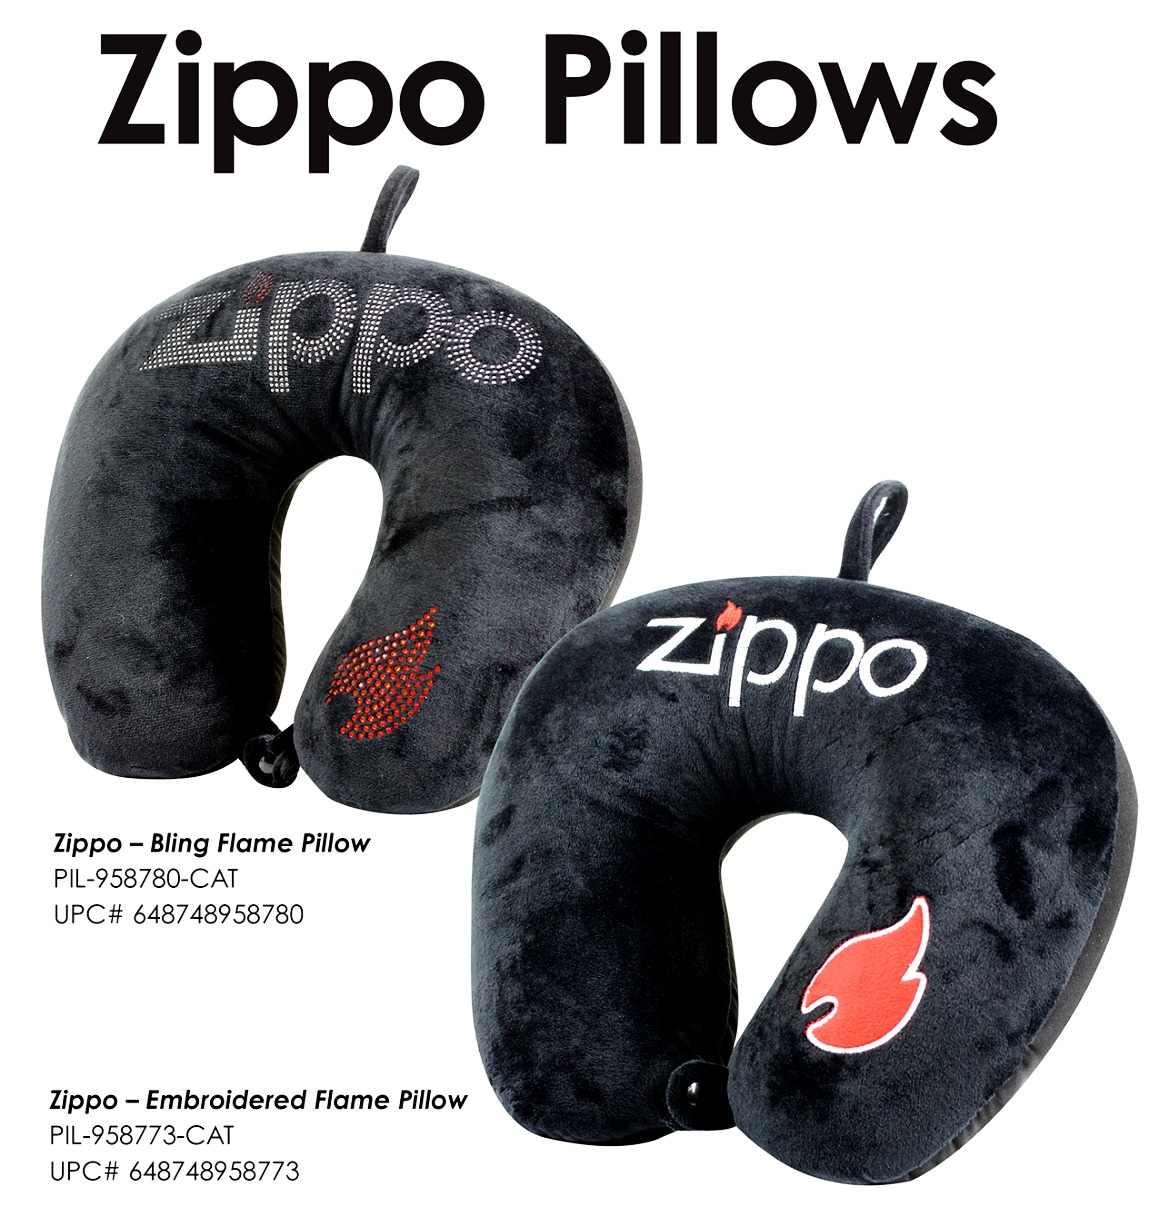 SNI Today - Zippo Pillows_edited